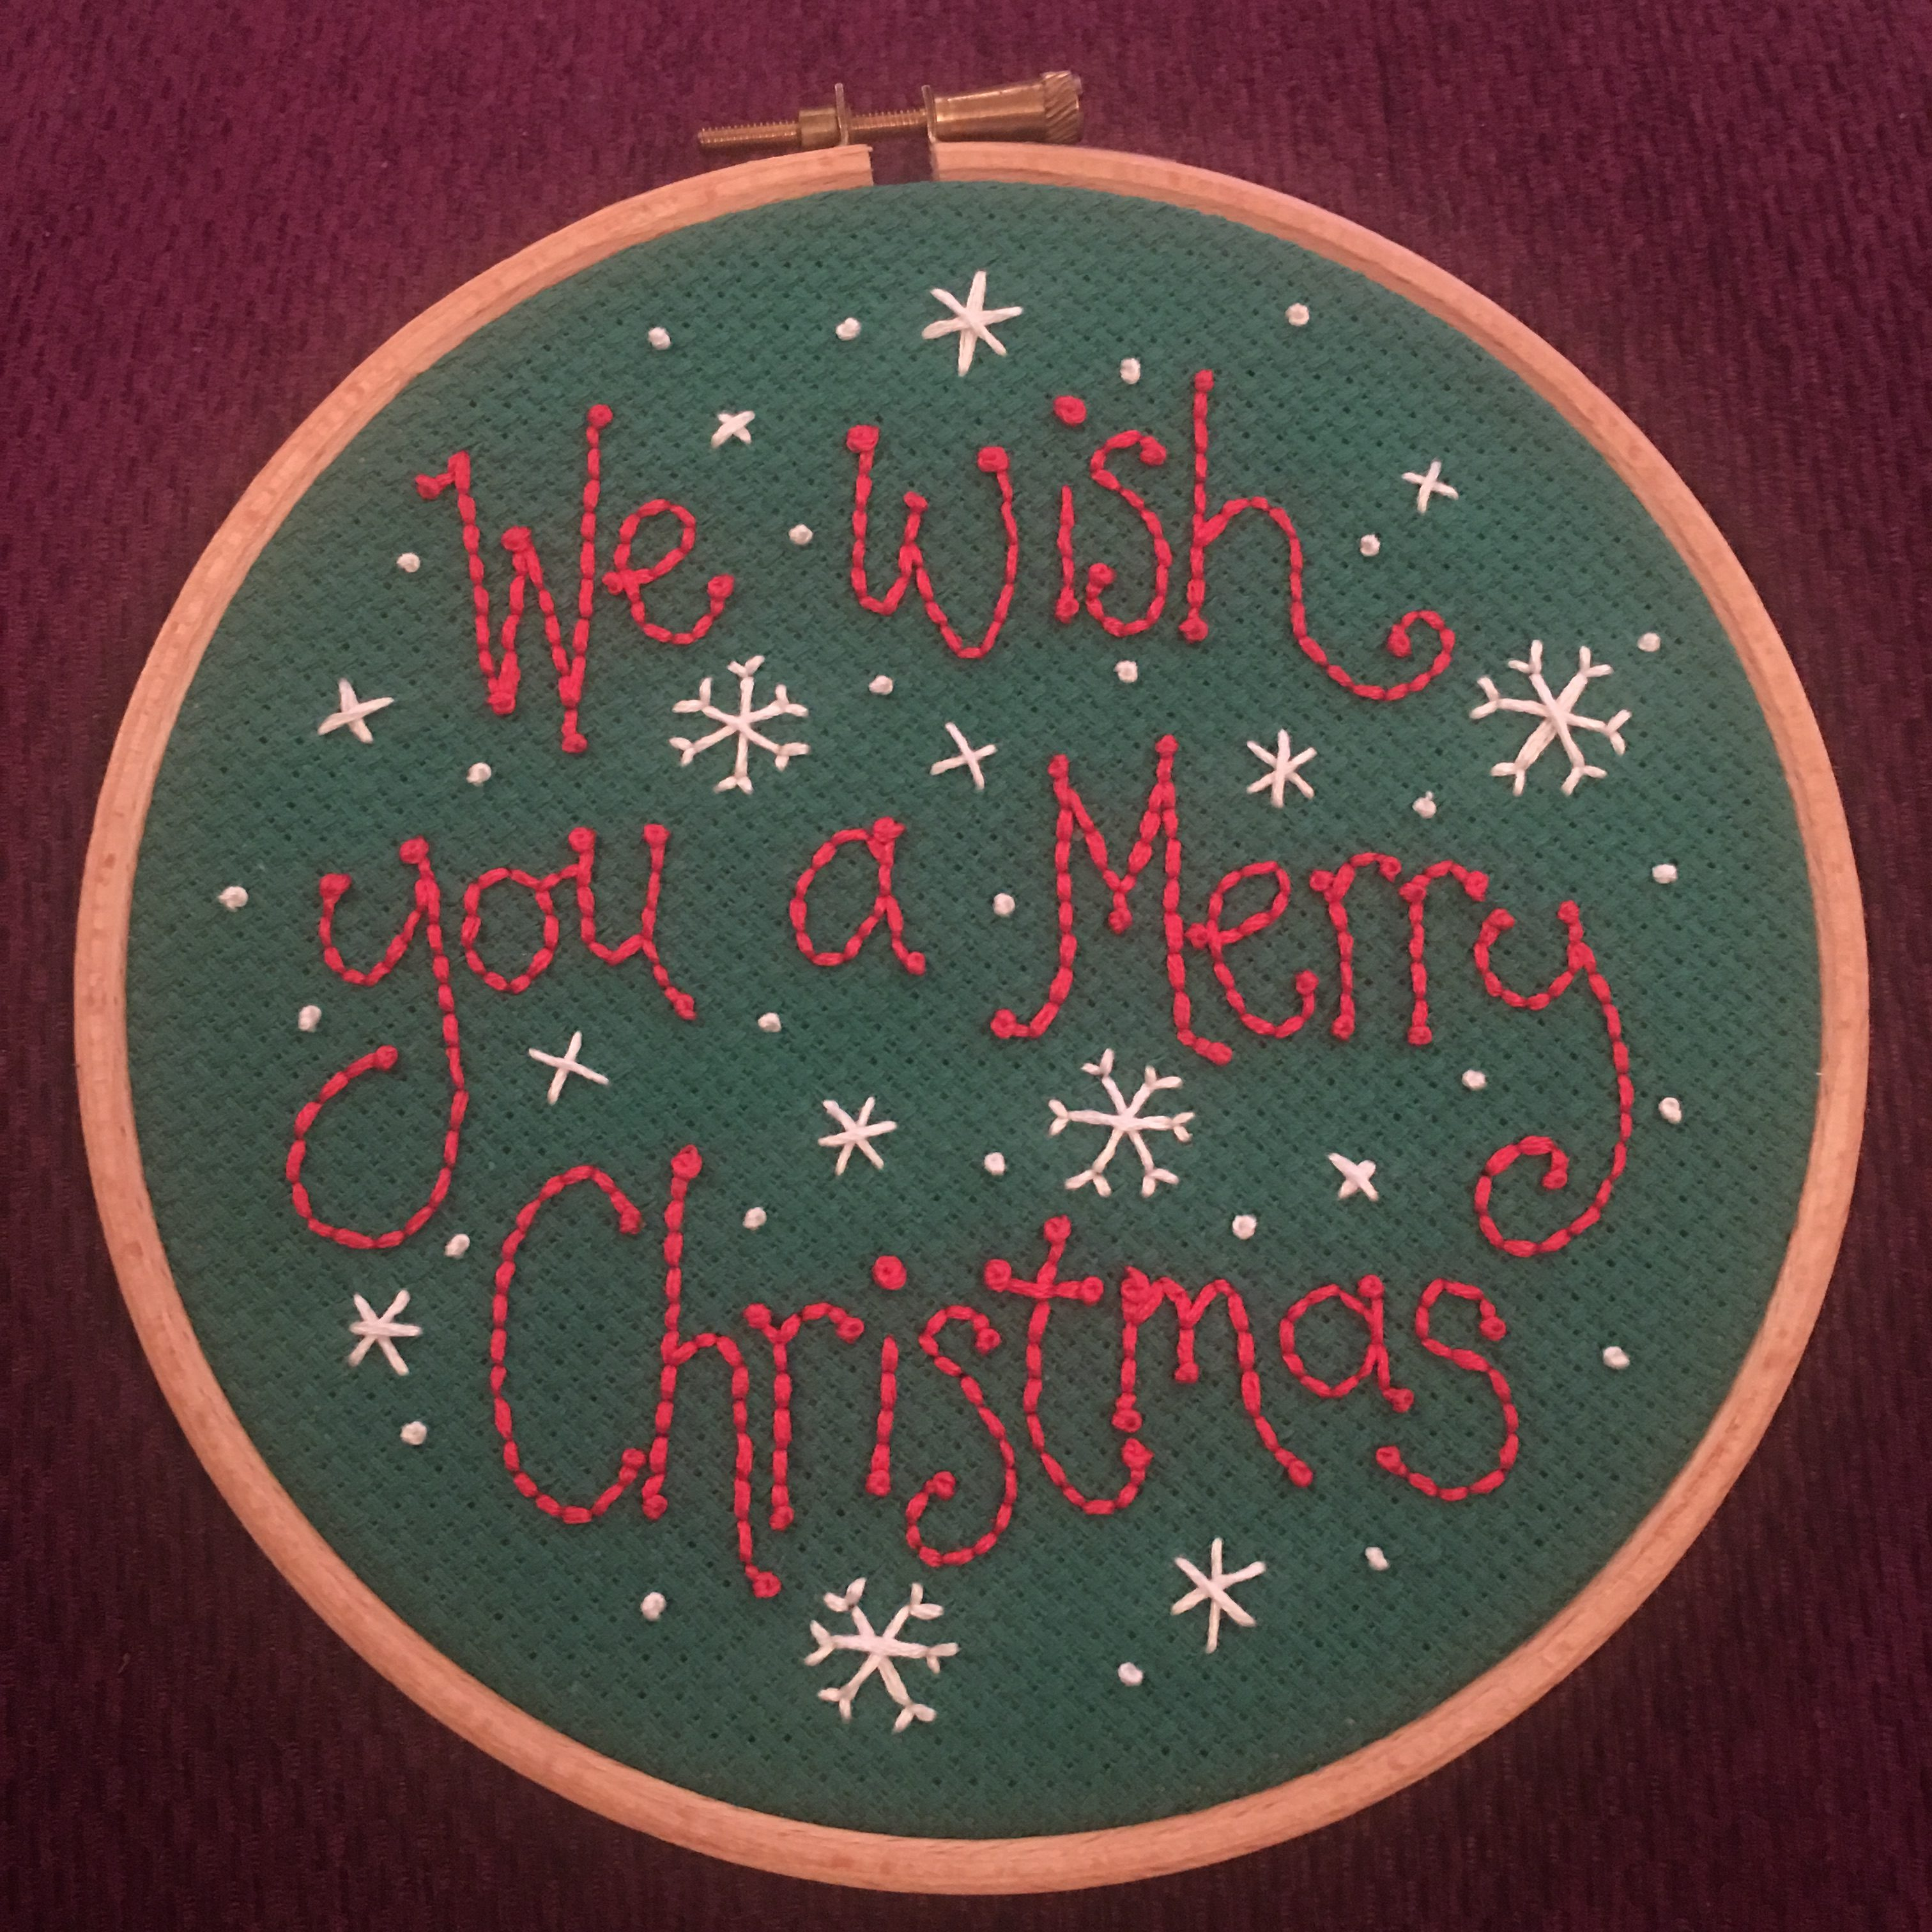 Christmas Embroidery Workshop - make your own!